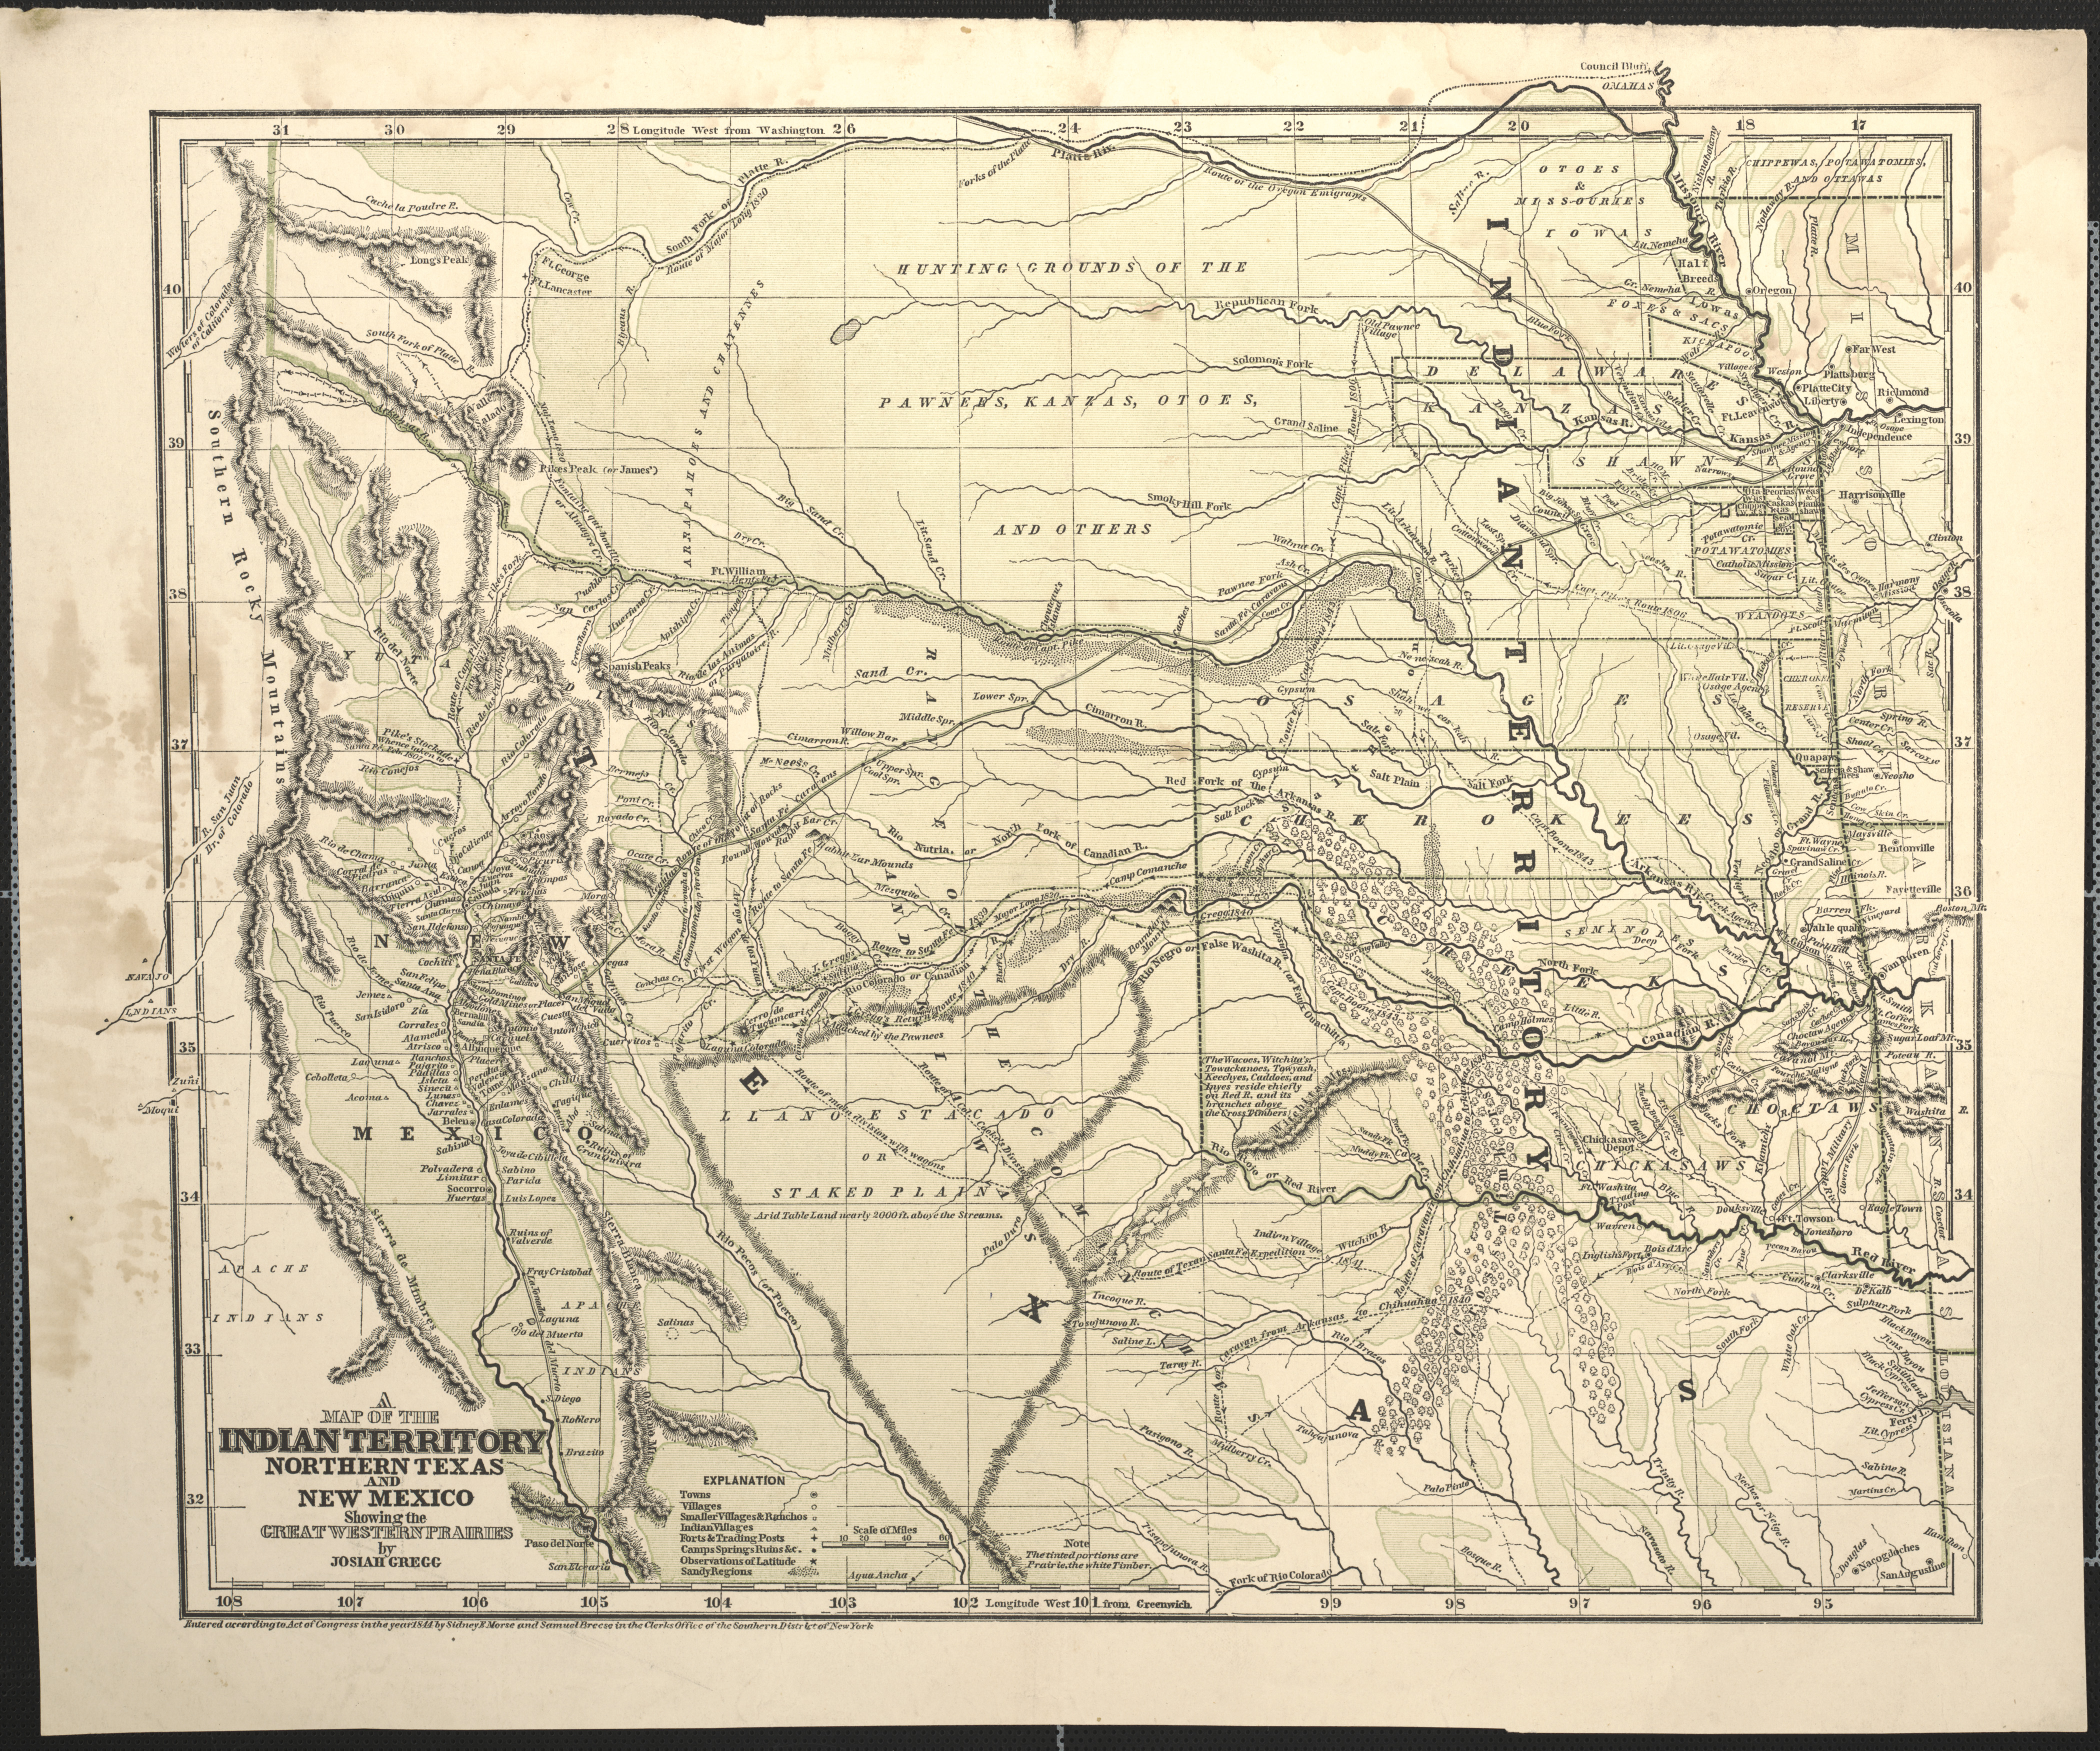 Map Of Western Texas.Maps A Map Of The Indian Territory Northern Texas And New Mexico